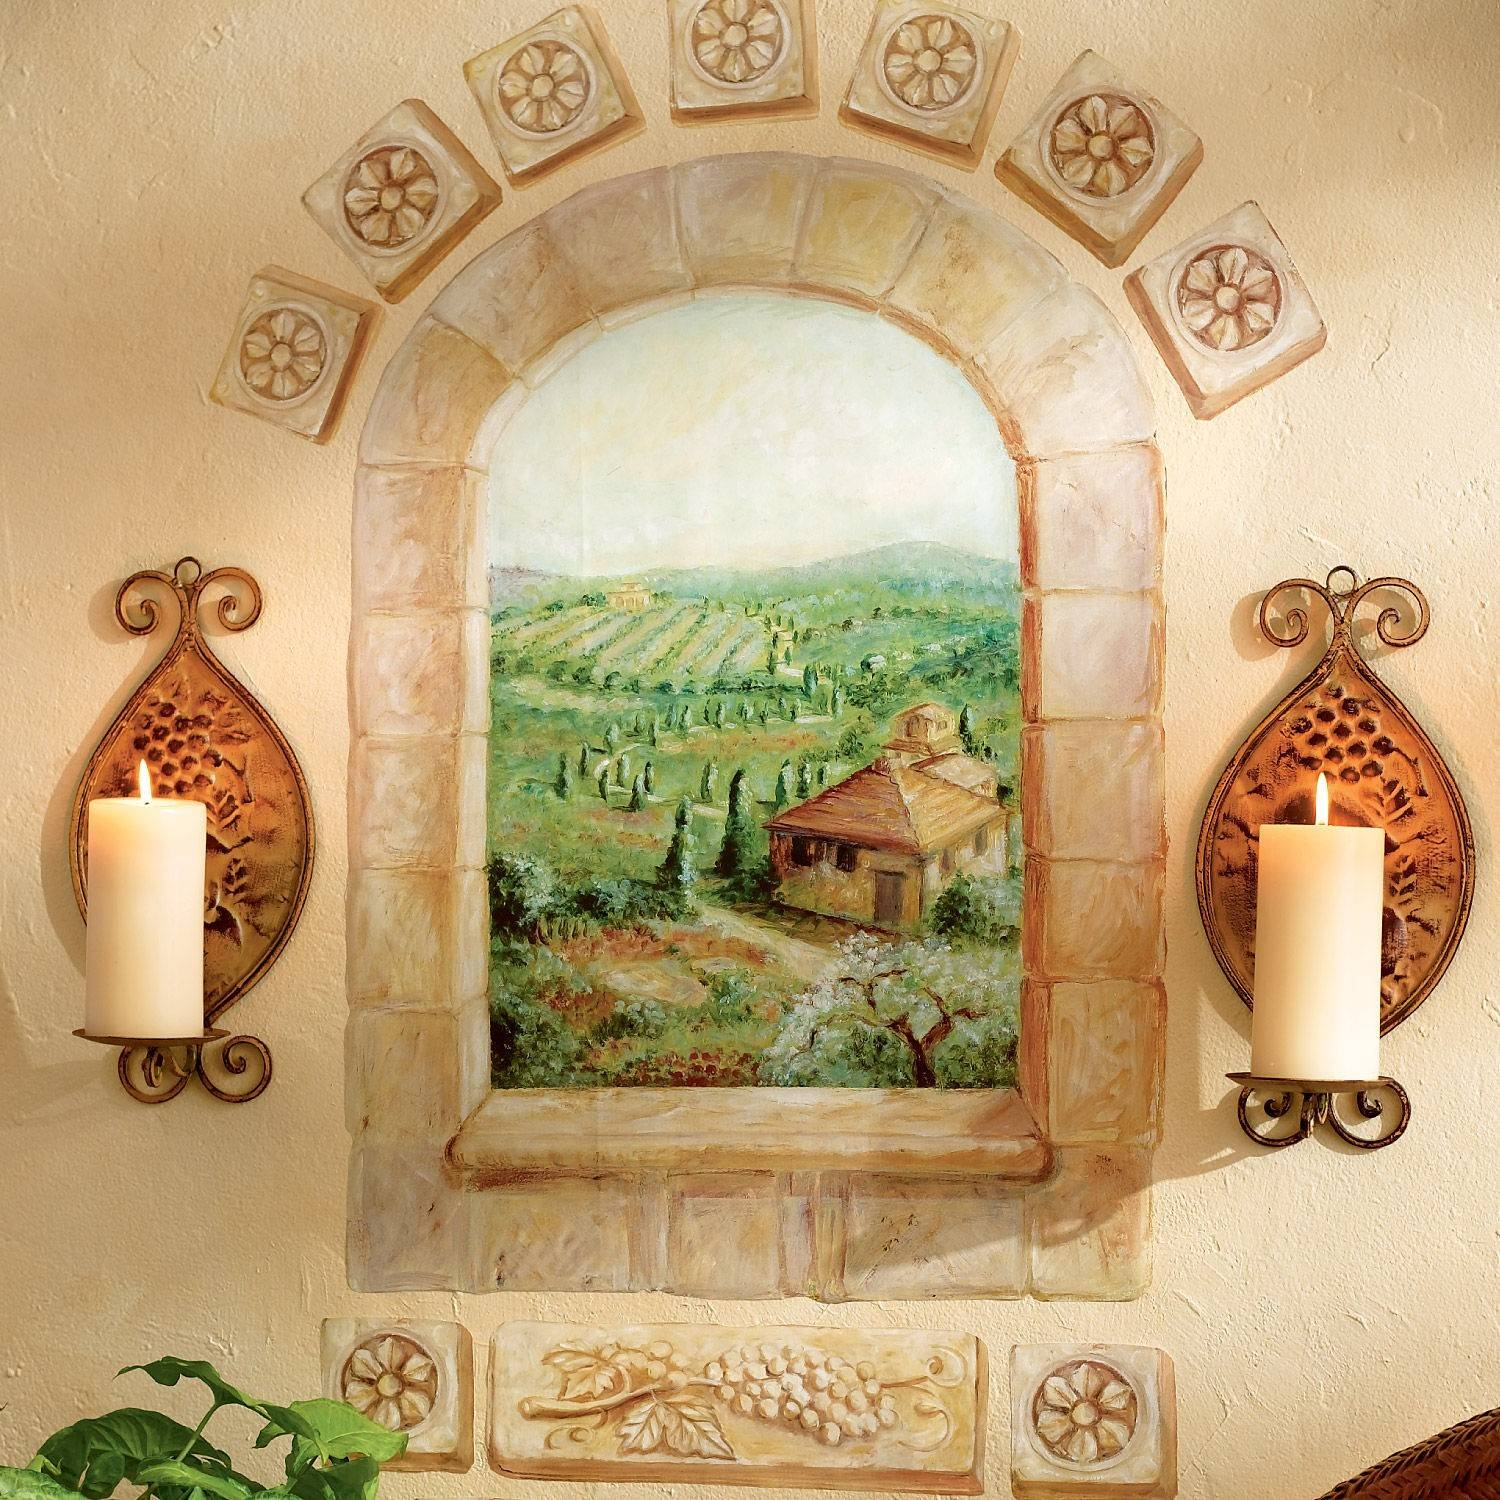 Tuscan Bathroom Wall Art | Bathroom Design Ideas 2017 Within Most Recently Released Tuscany Wall Art (View 11 of 20)